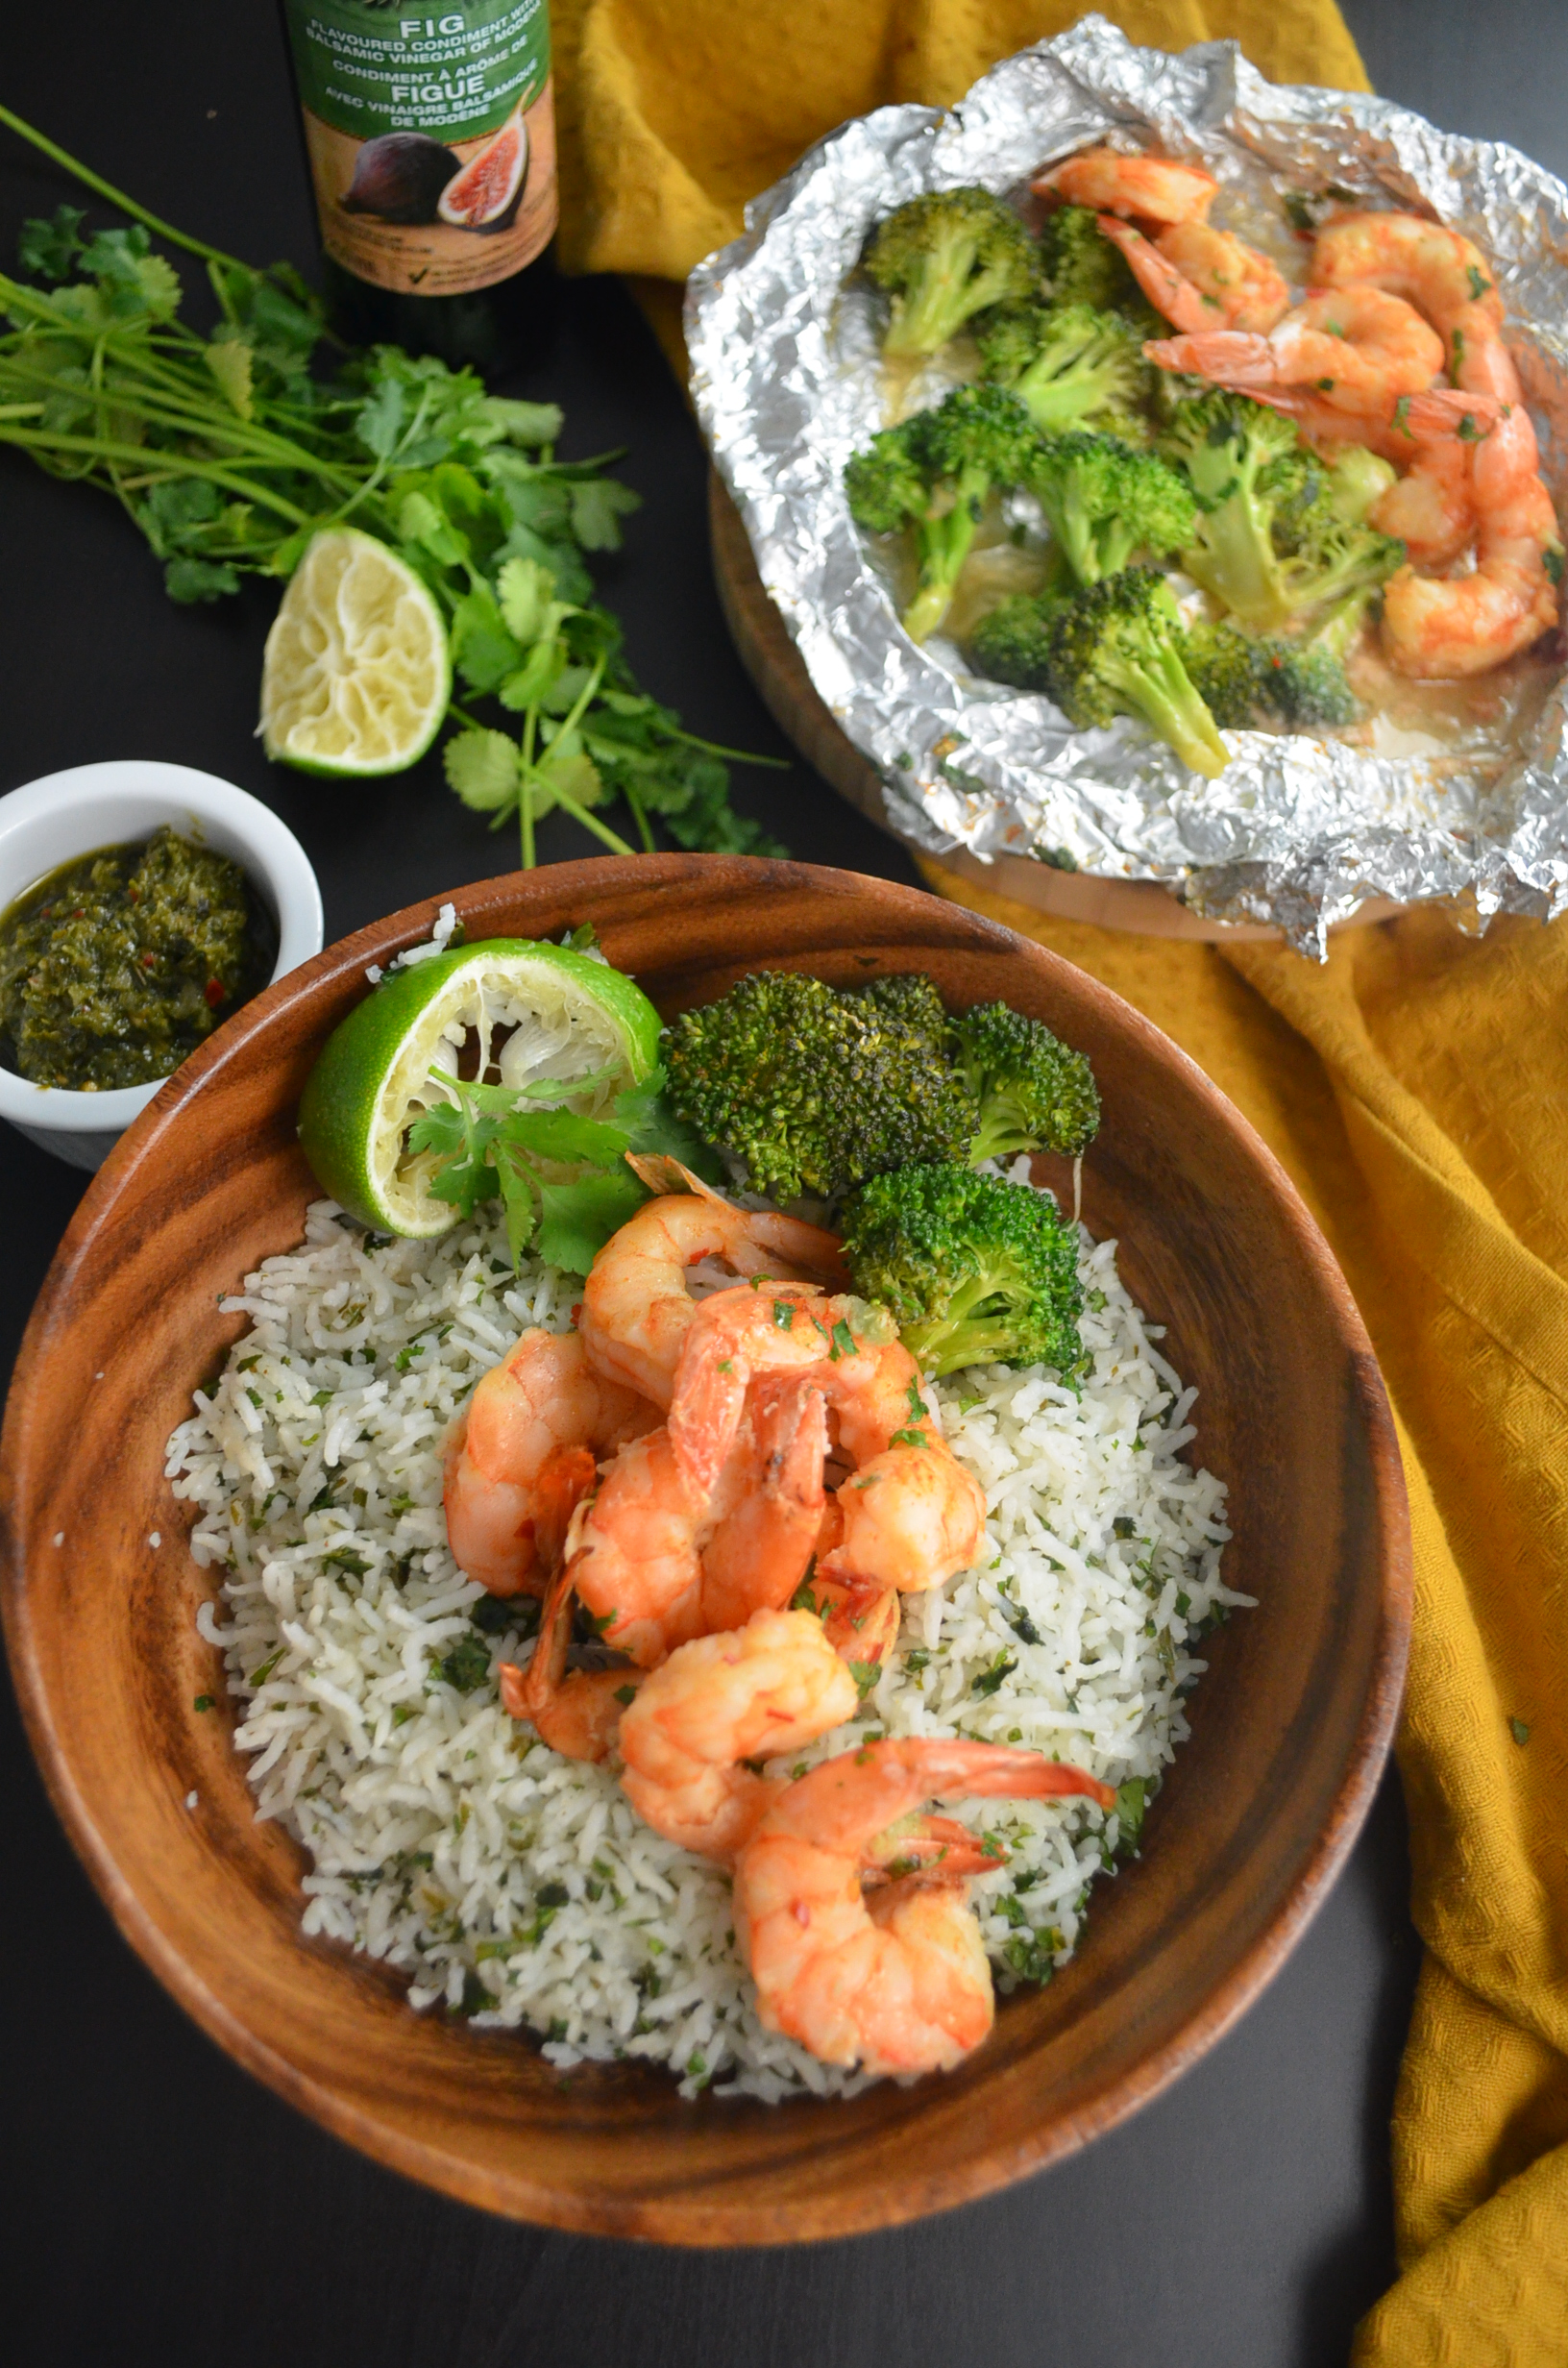 Shrimp and Broccoli Foil Packets